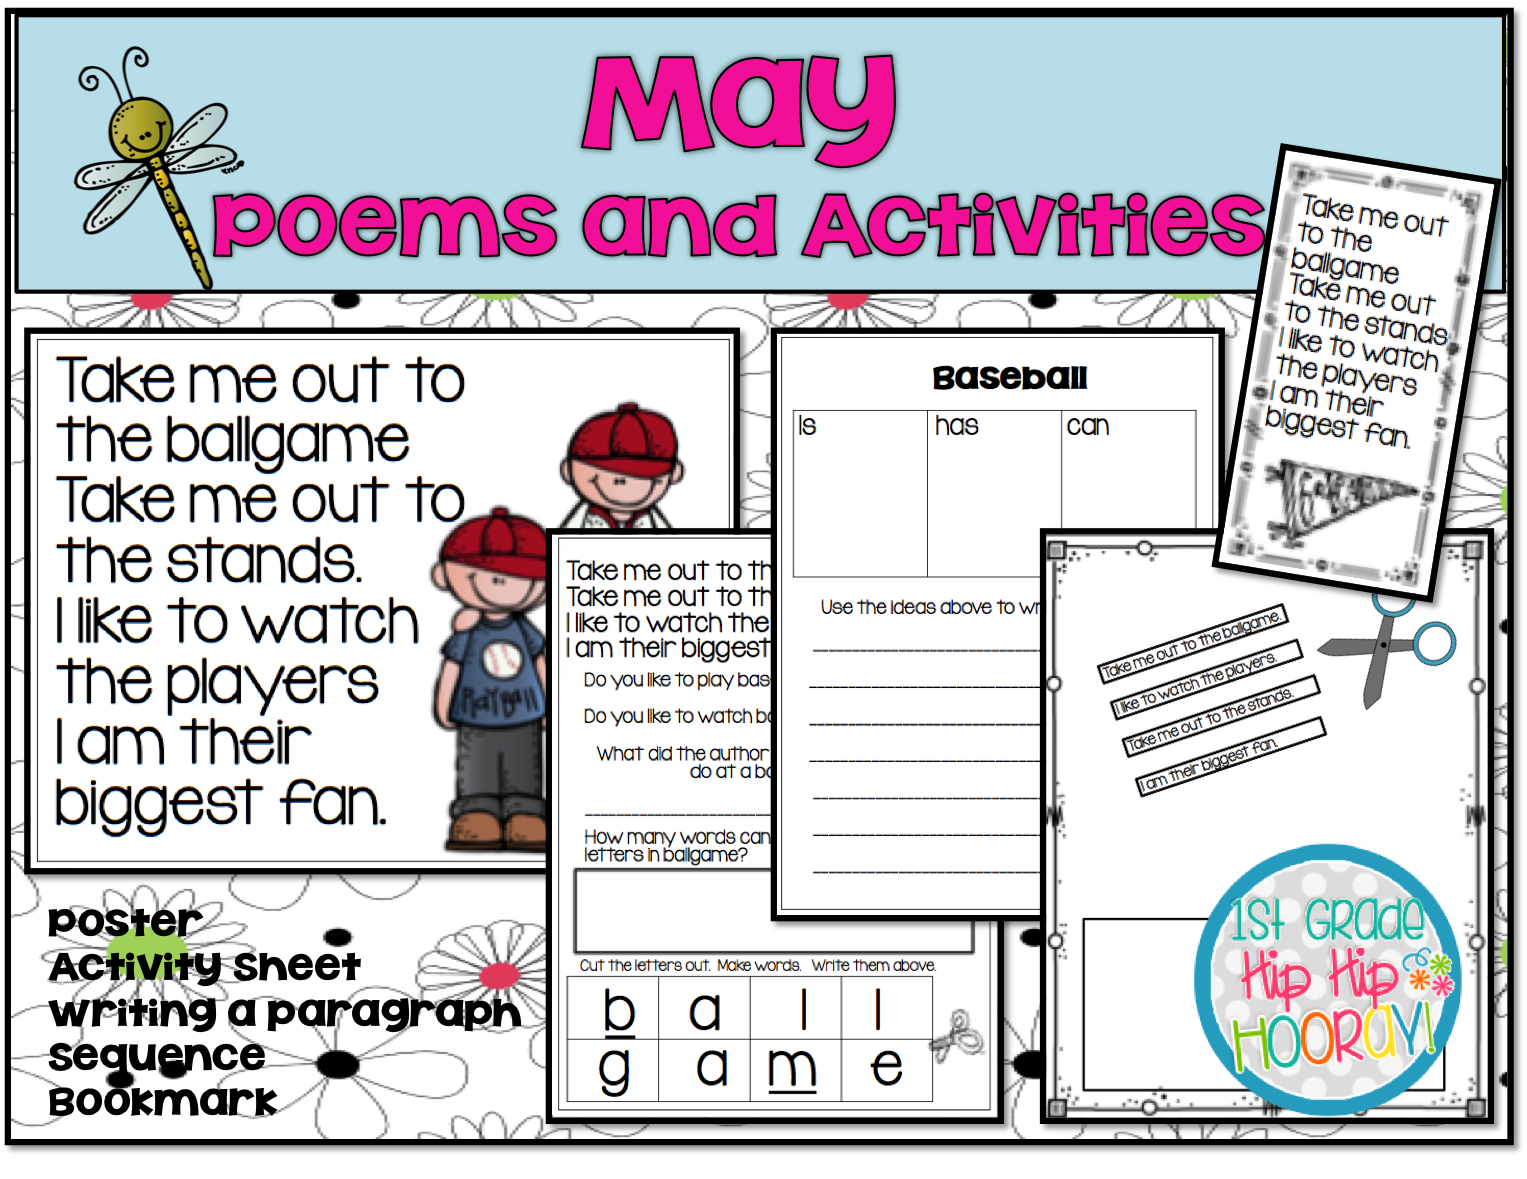 1st grade hip hip hooray may poems and activities. Black Bedroom Furniture Sets. Home Design Ideas